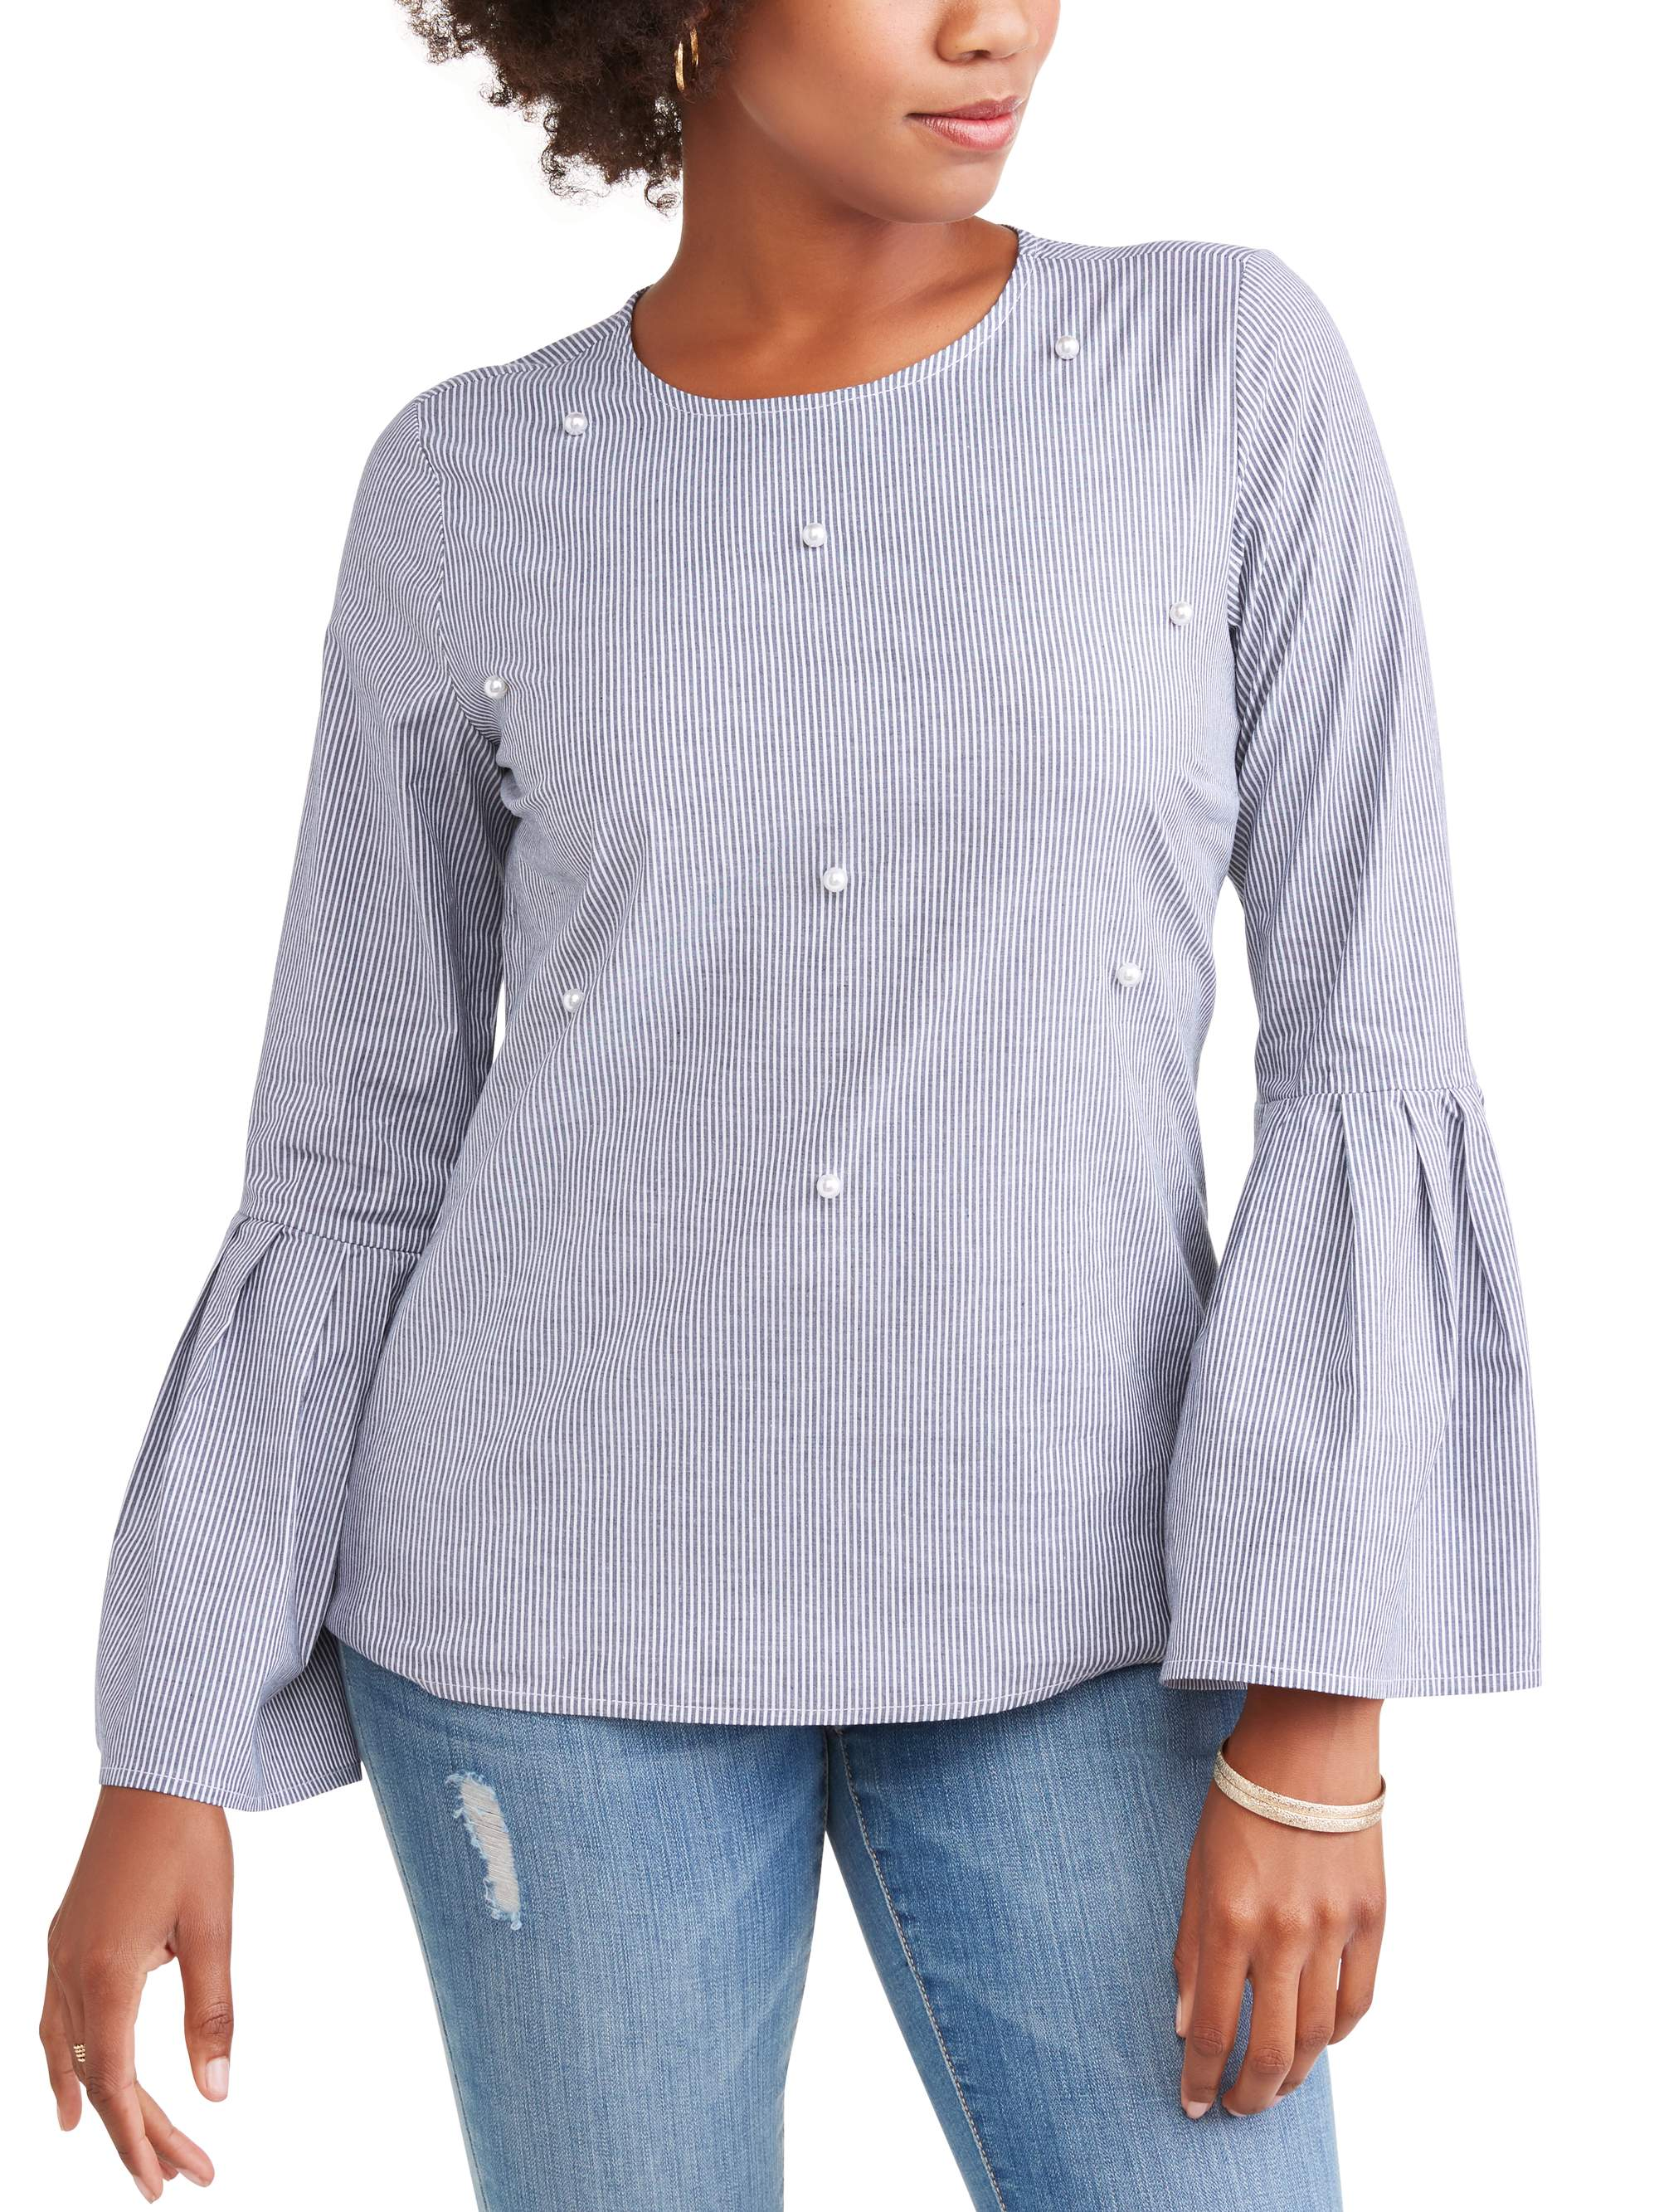 Time and Tru Women's Pearl Front Top by SHAHI EXPORTS PVT LTD